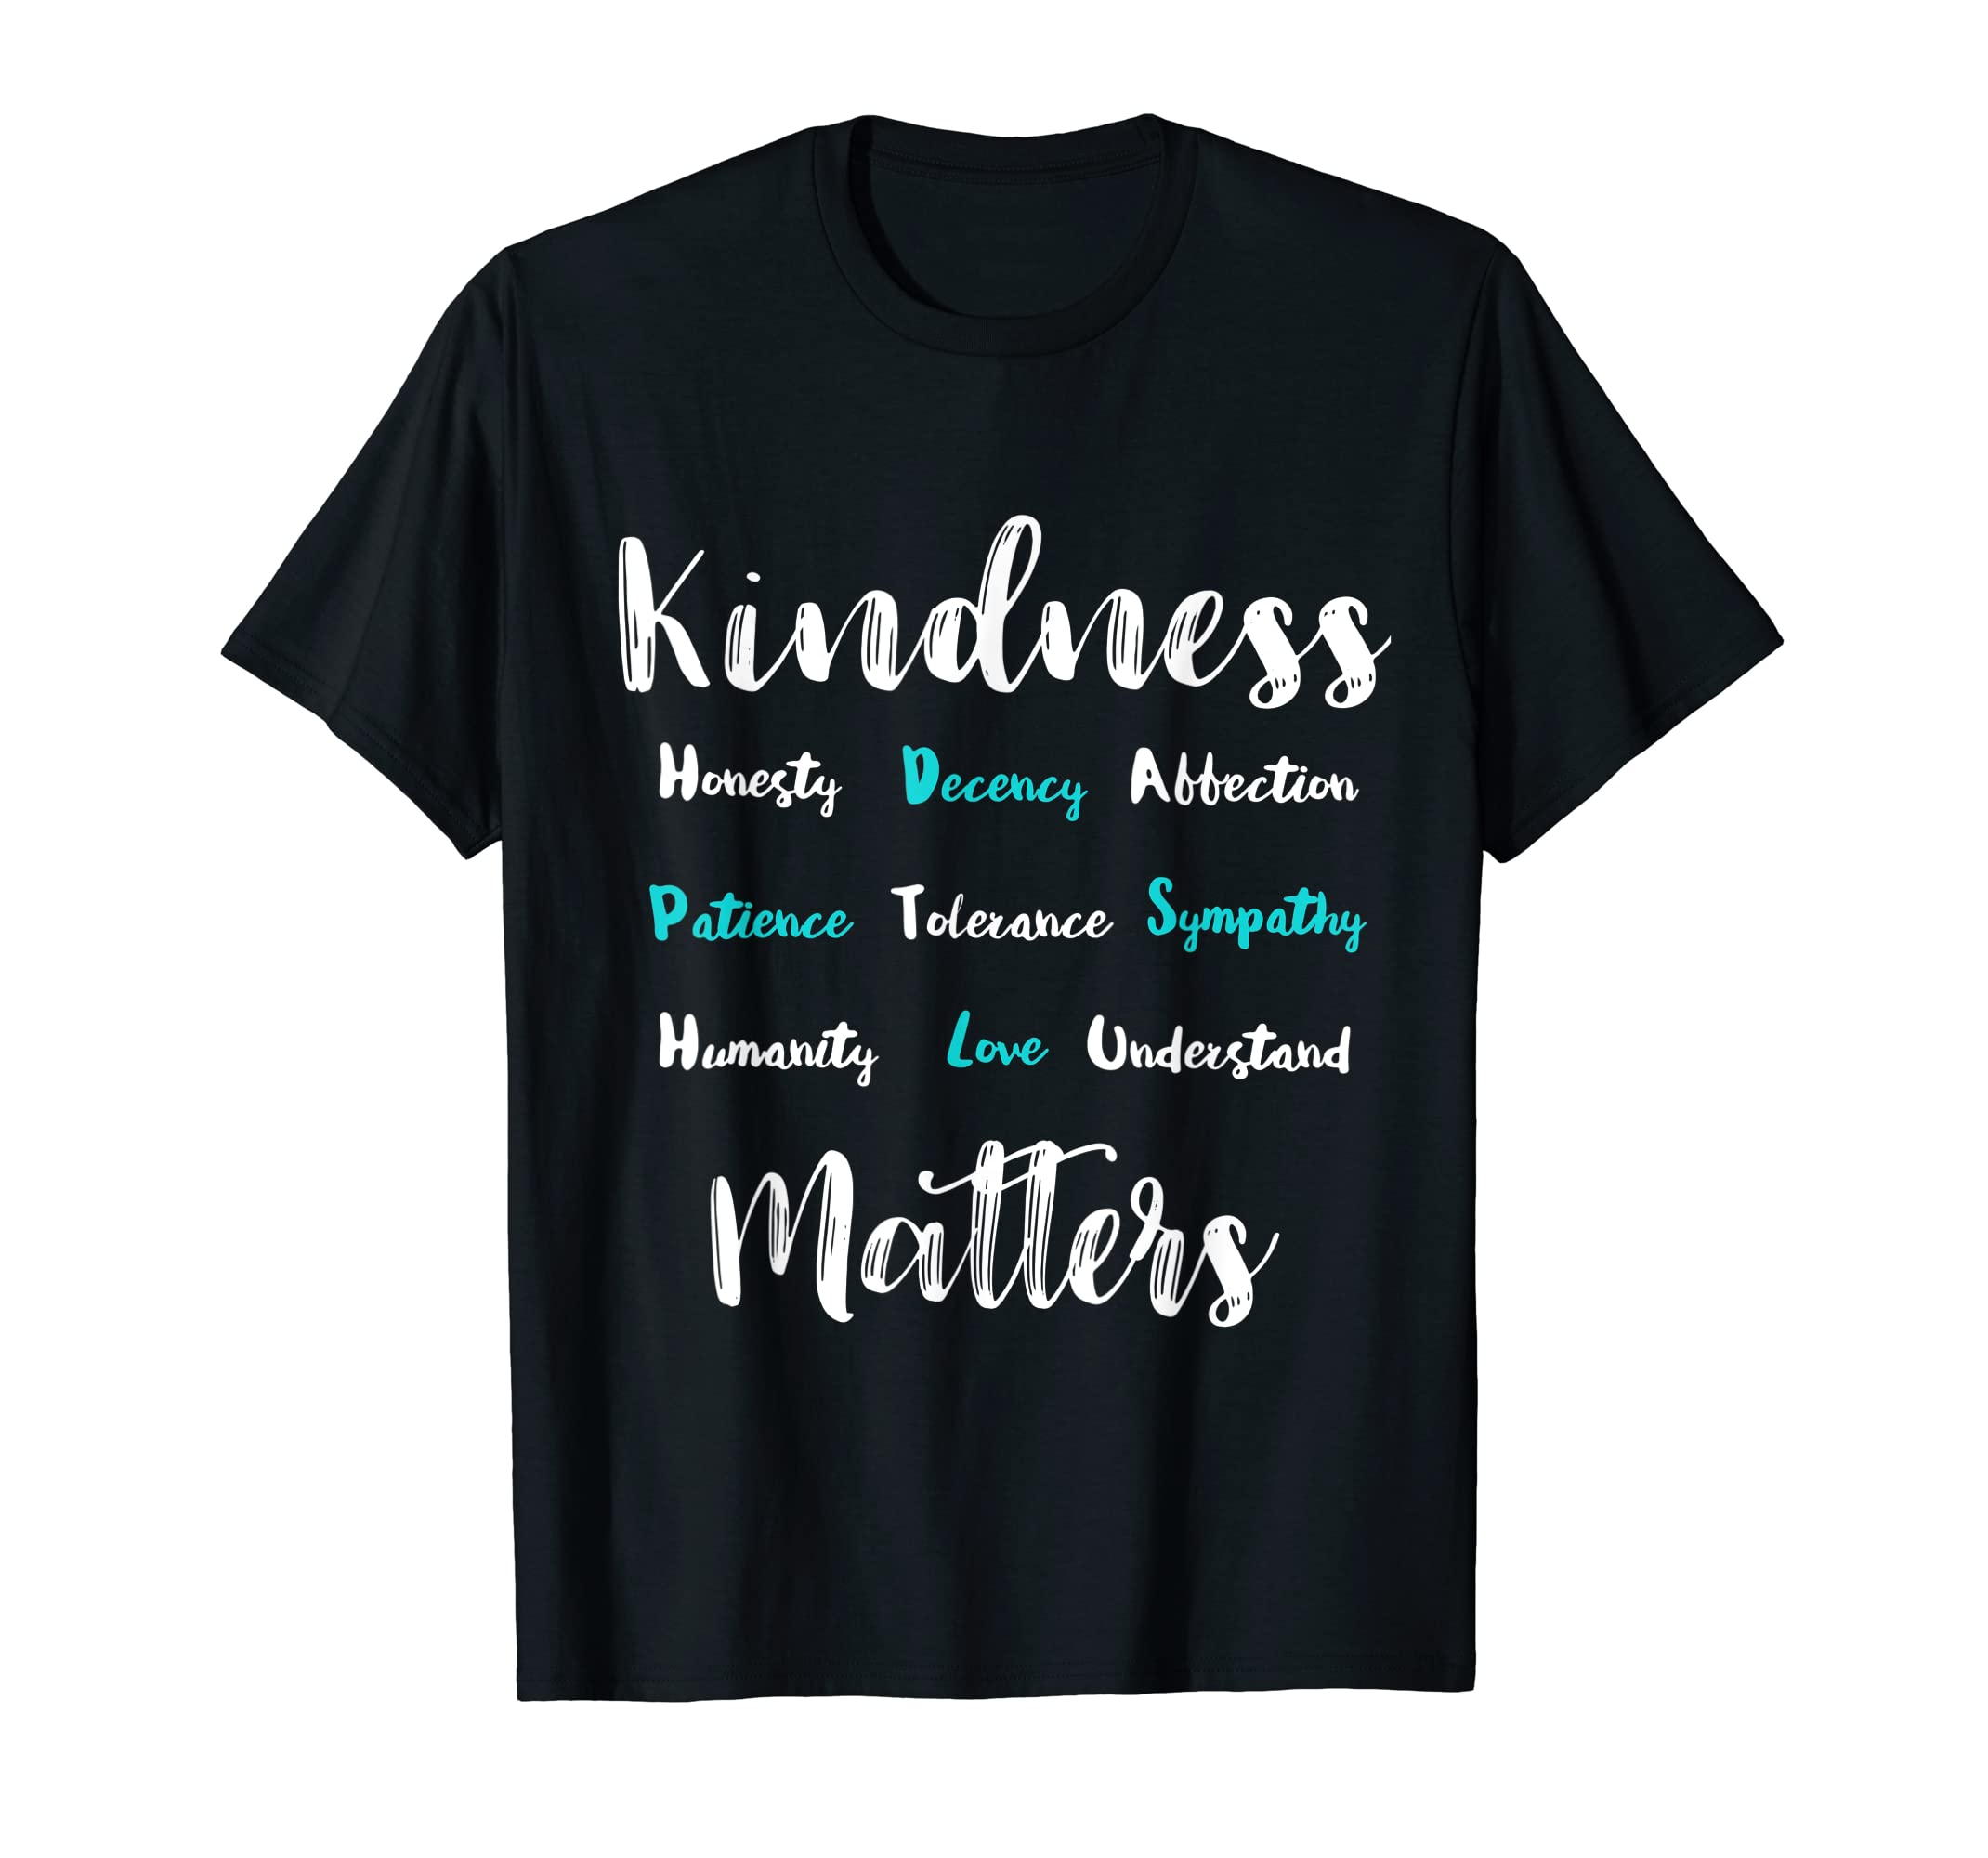 a71010b5d60 Amazon.com  Kindness Matters - Inspirational Quotes T-Shirt  Clothing